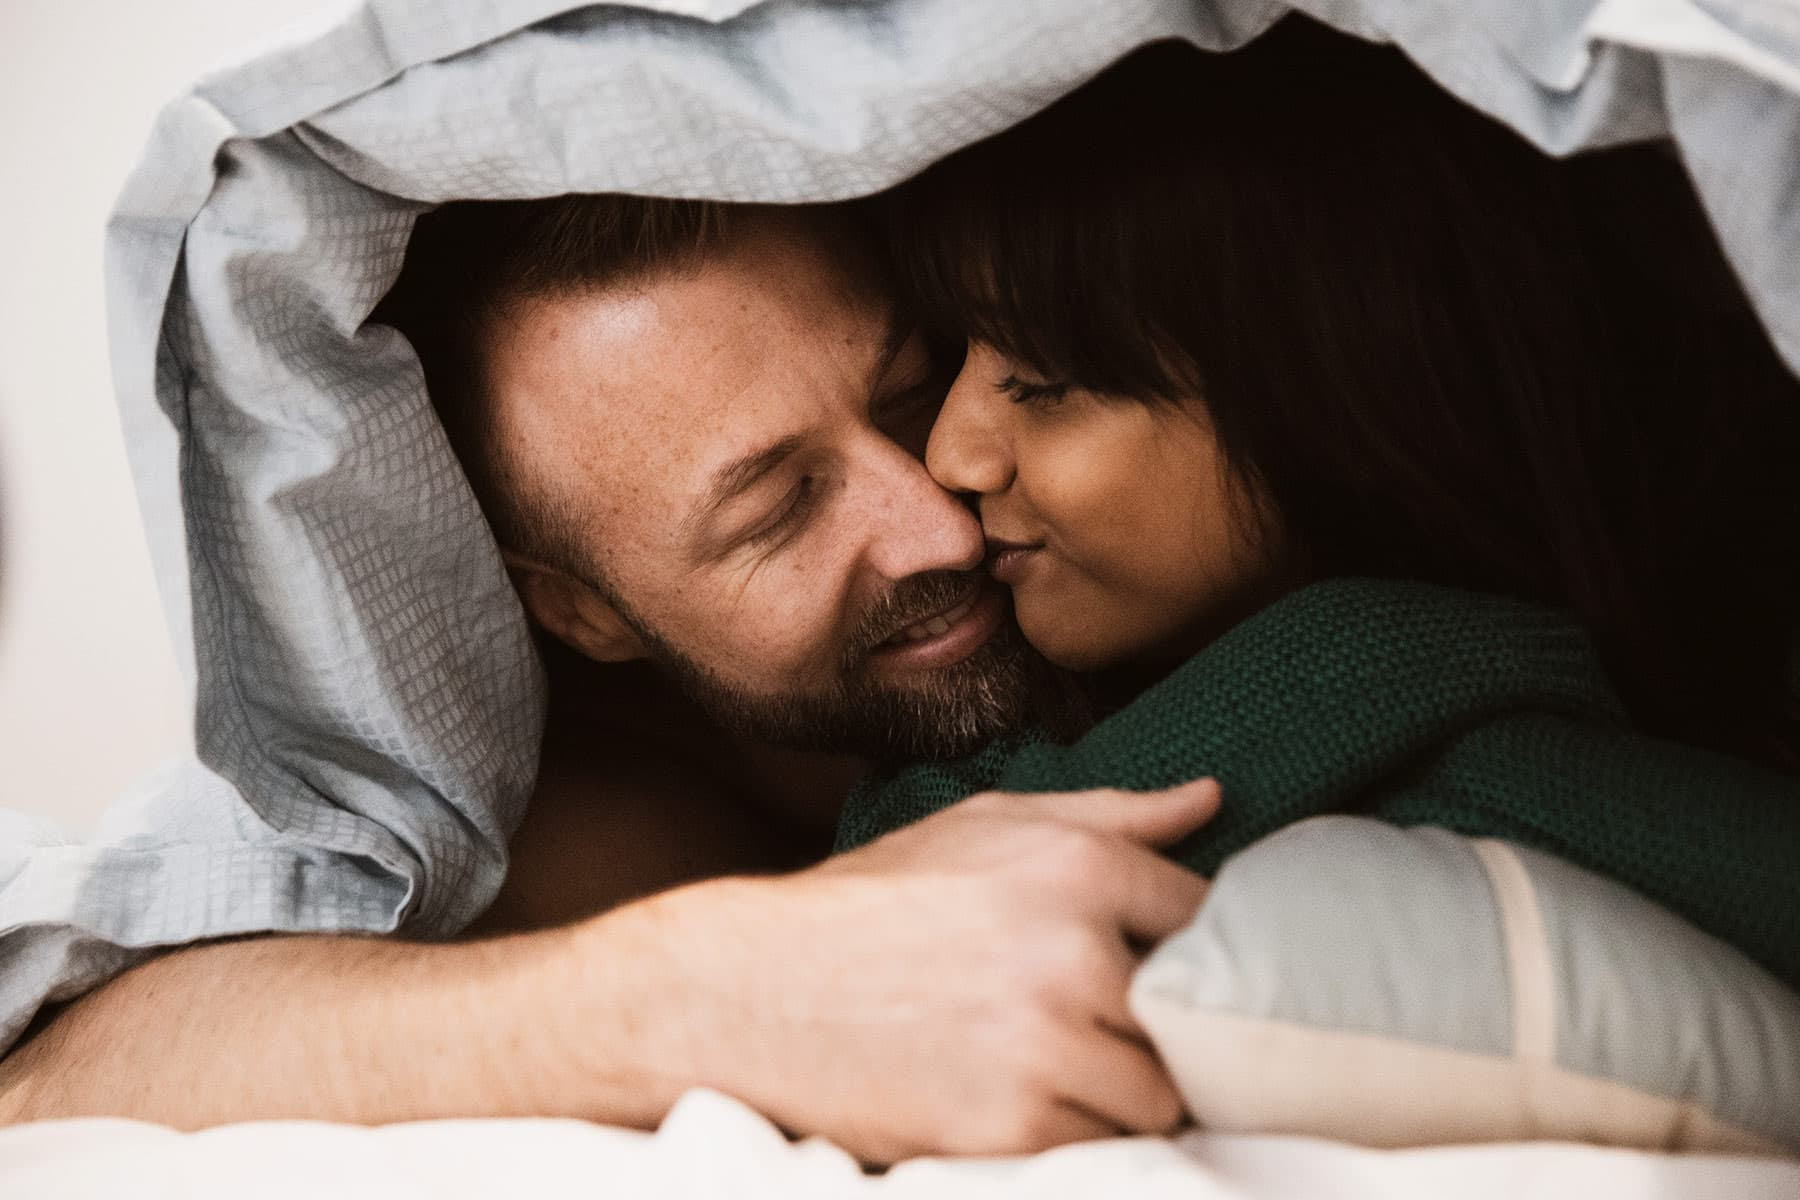 Re-explore your relationship and get to know each other better. Cuddle in bed under the sheets together, it will make you and your partner feel closer to one another. Cuddling also heightens the sense of intimacy. Image courtesy of webmd.com.